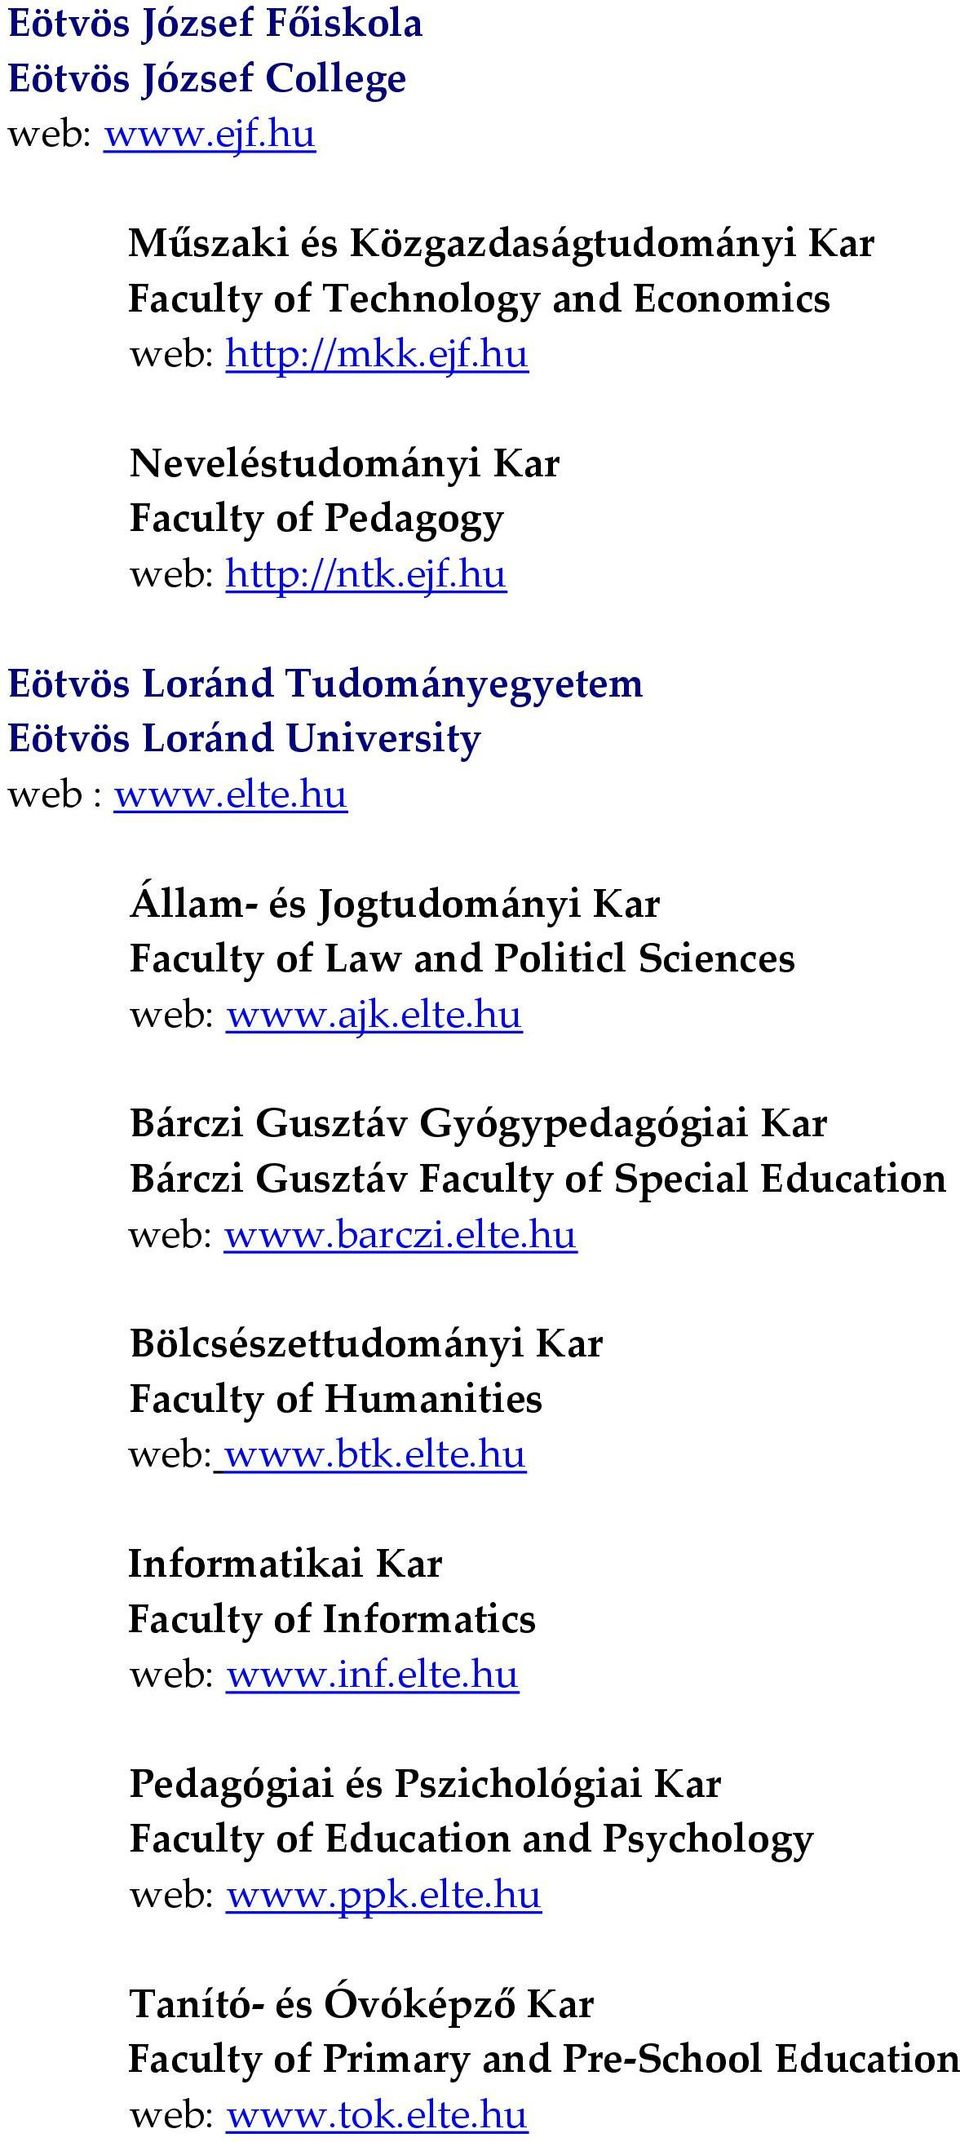 barczi.elte.hu Bölcsészettudományi Kar Faculty of Humanities web: www.btk.elte.hu Informatikai Kar Faculty of Informatics web: www.inf.elte.hu Pedagógiai és Pszichológiai Kar Faculty of Education and Psychology web: www.